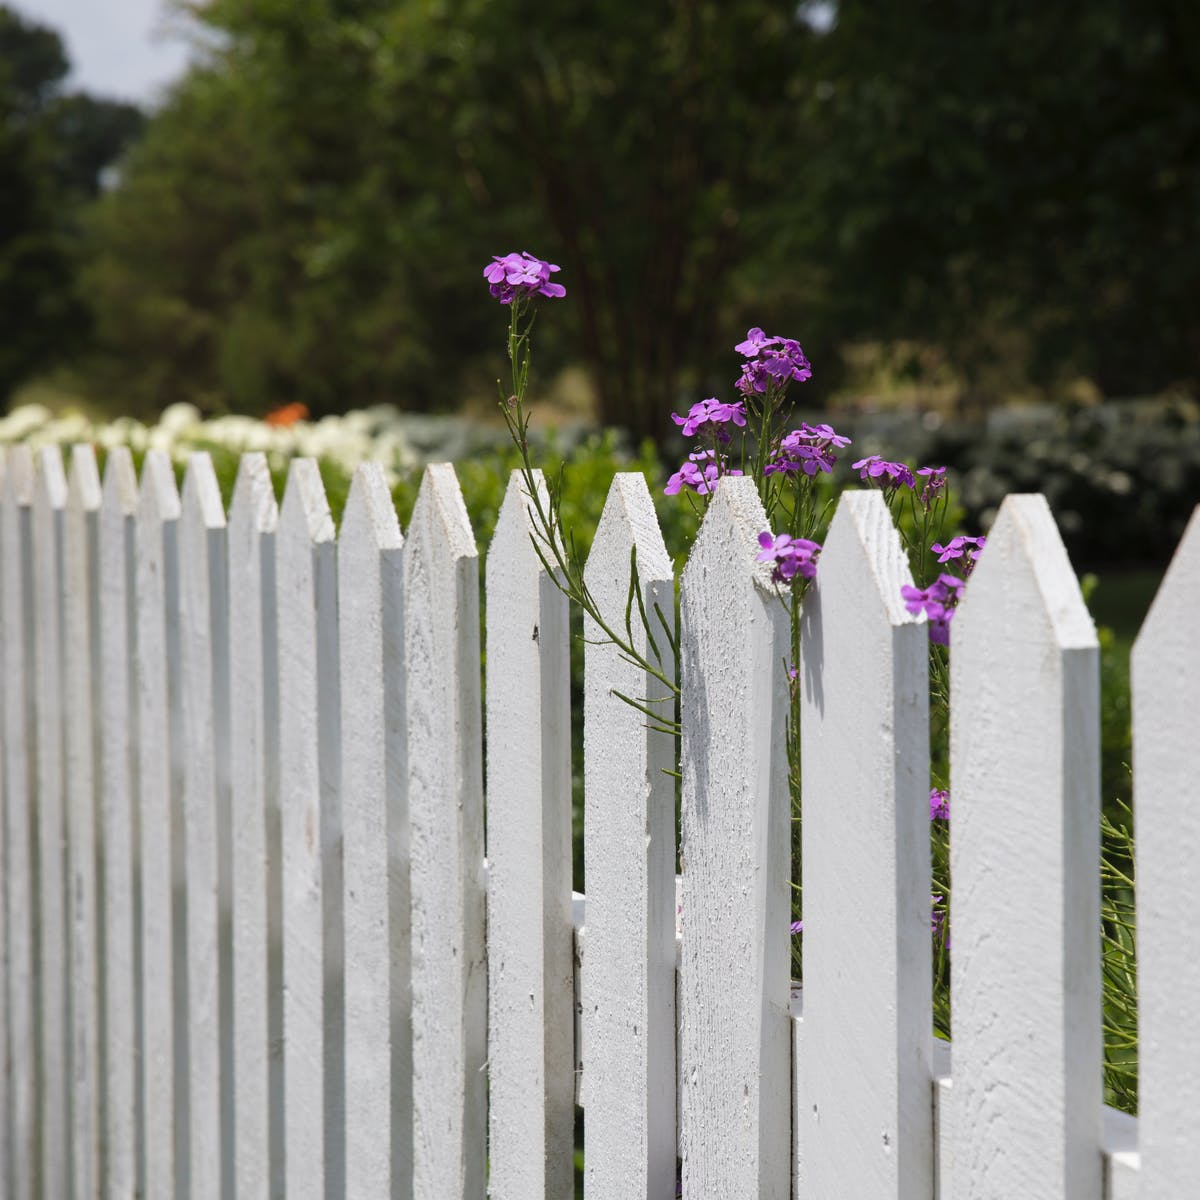 Demolish Your Front Fence It Would Be An Act Of Radical Kindness